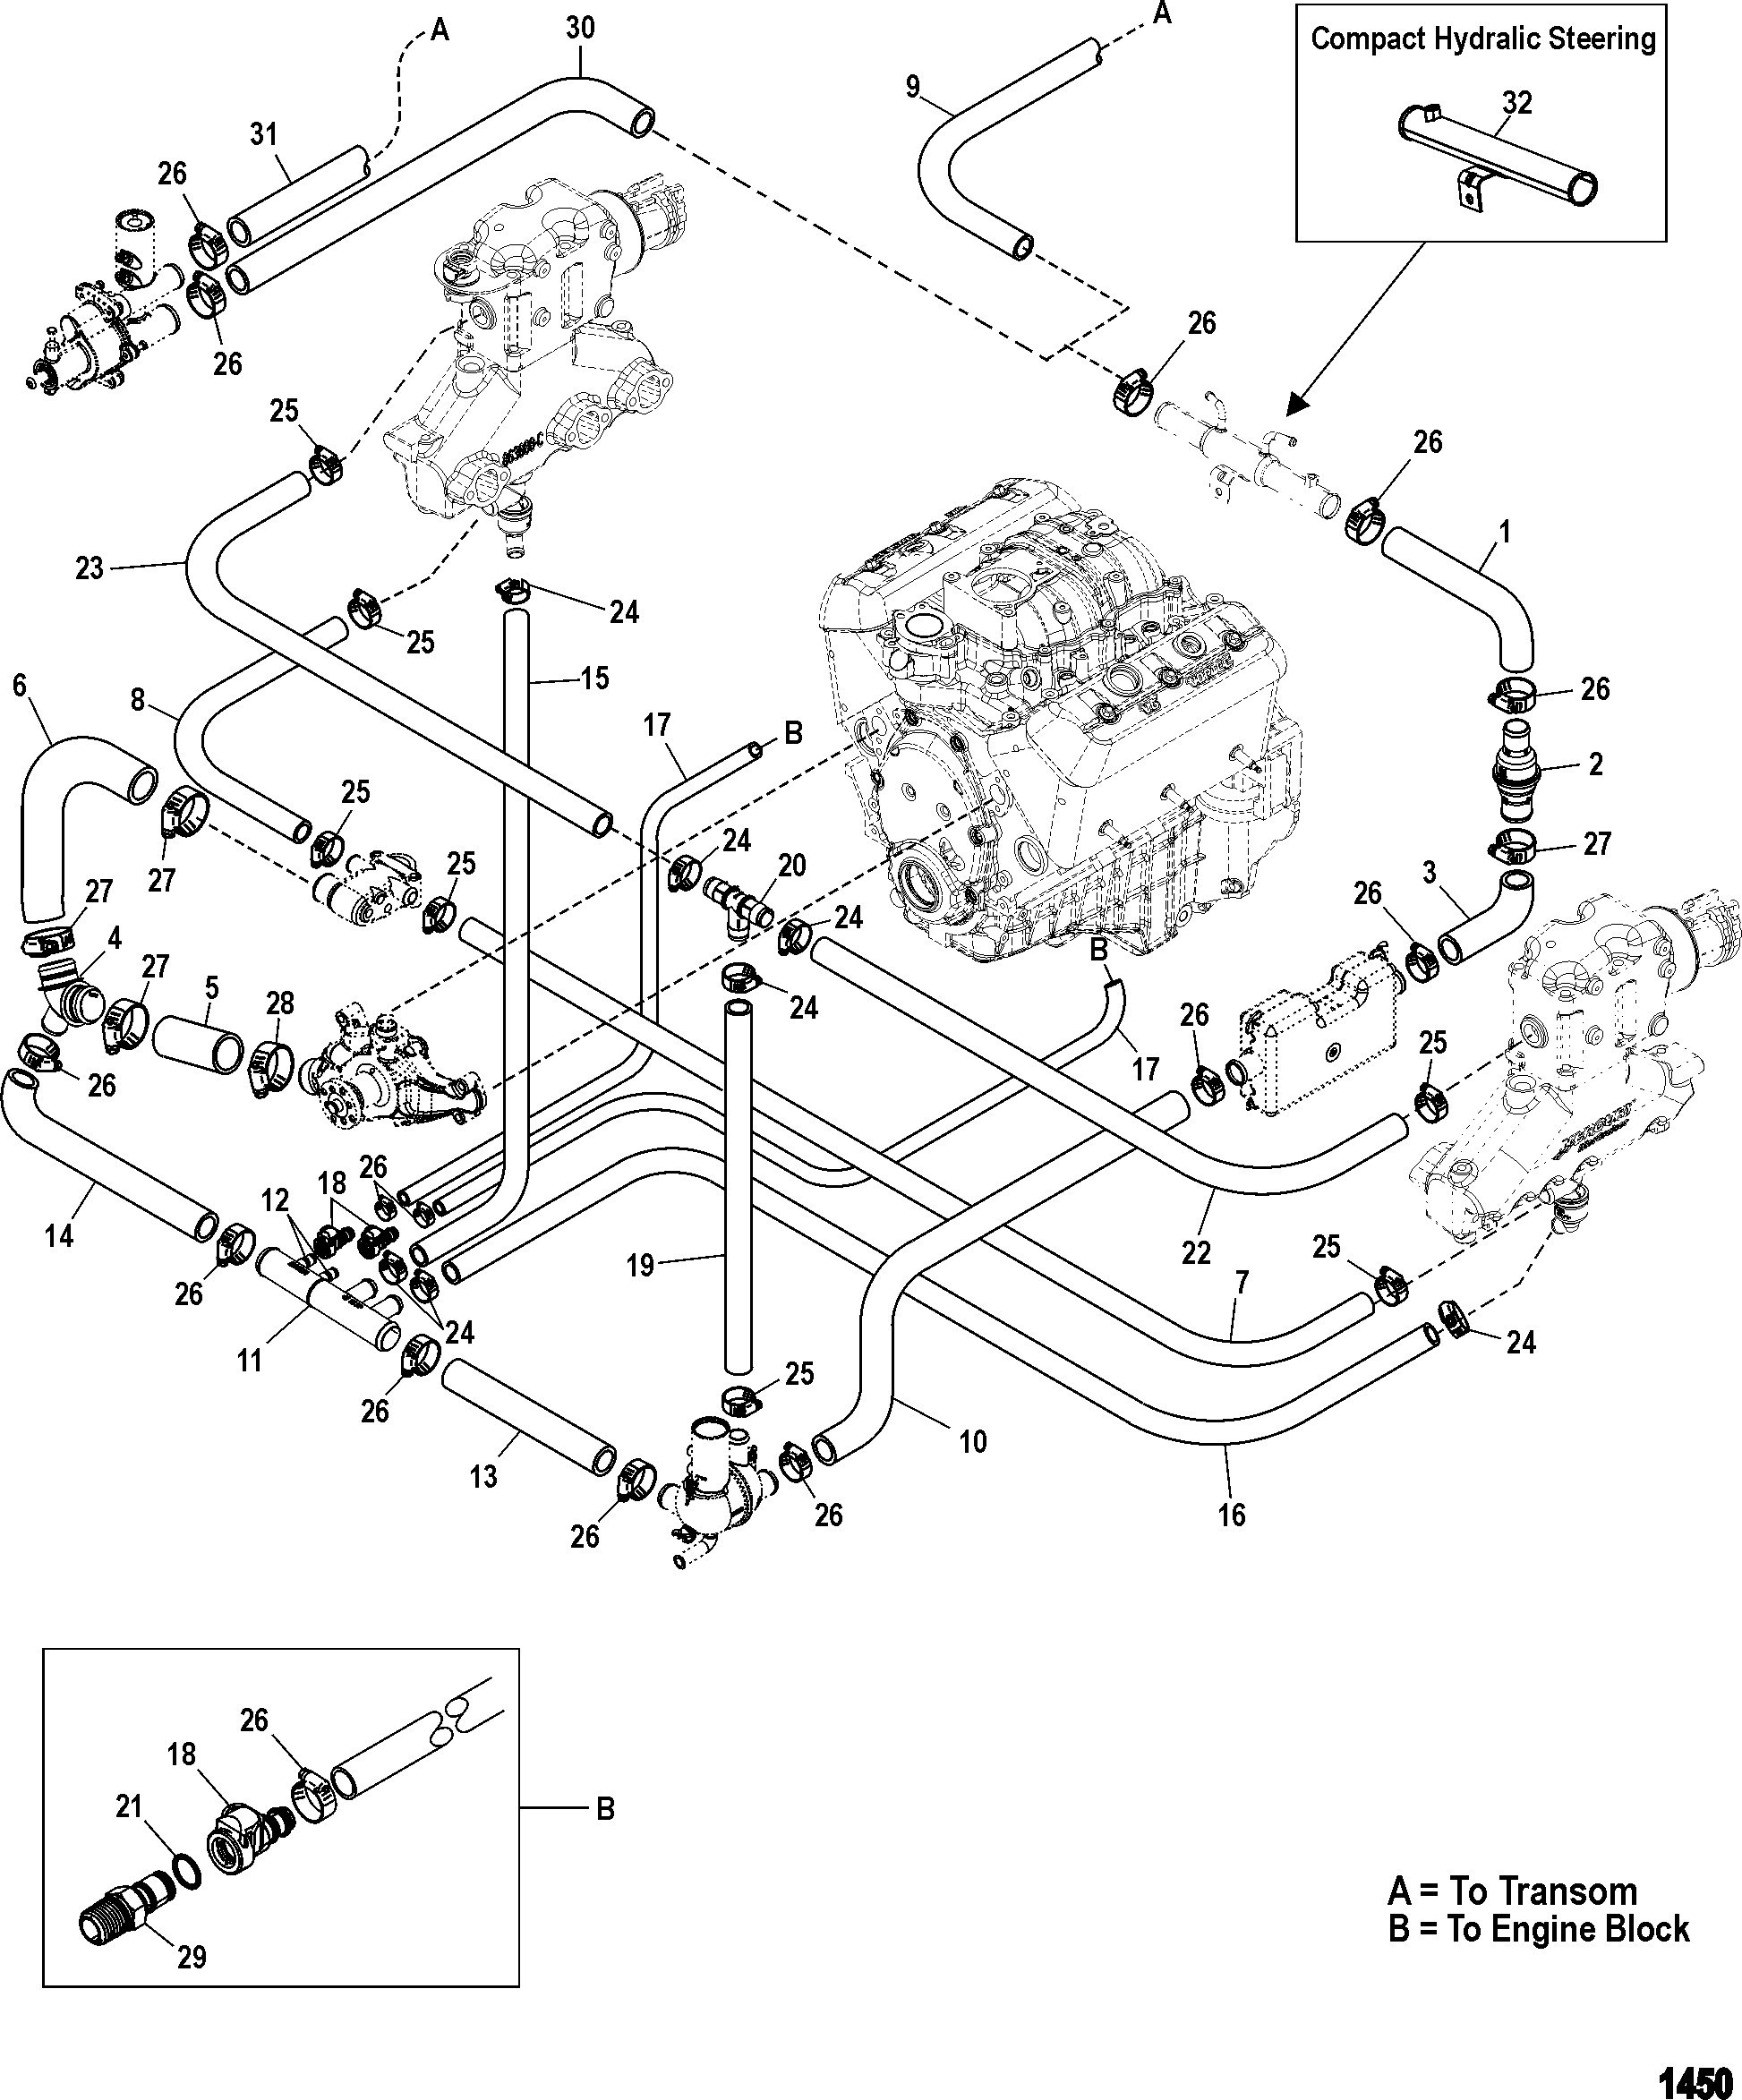 4 3 V6 Mercruiser Engine Diagram Standard Cooling System For Elegant Vortec Wiring Of